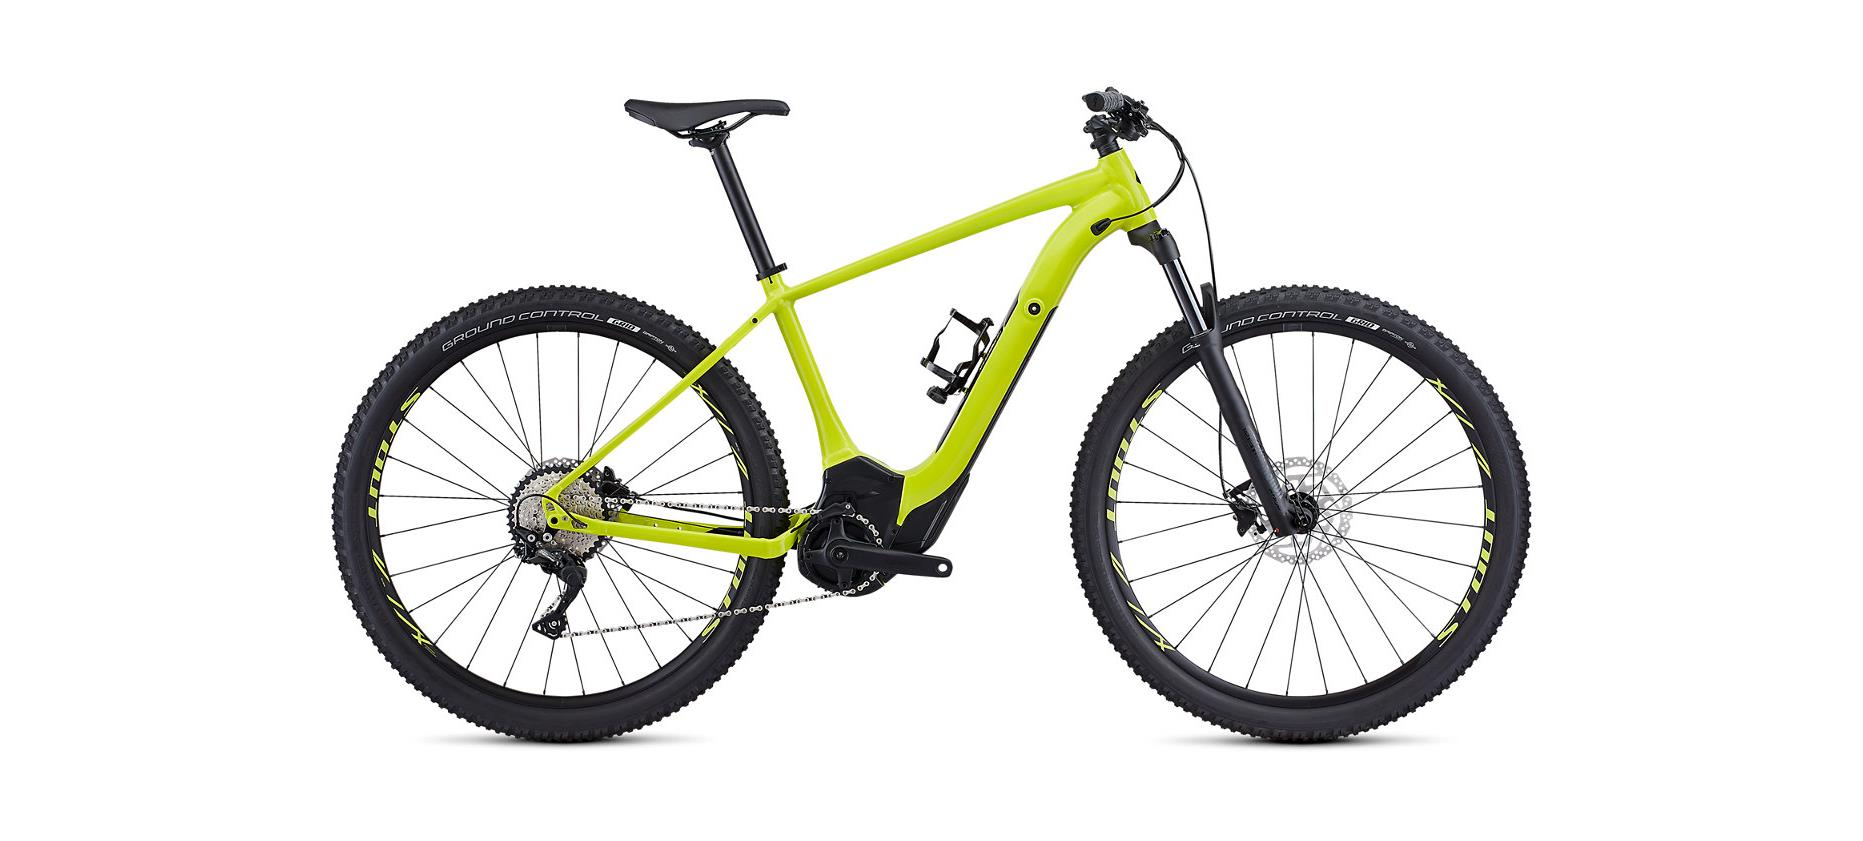 Specialized Turbo Levo Hardtail Comp Hyper Green/Black 2020 - 29 500 Wh -  L